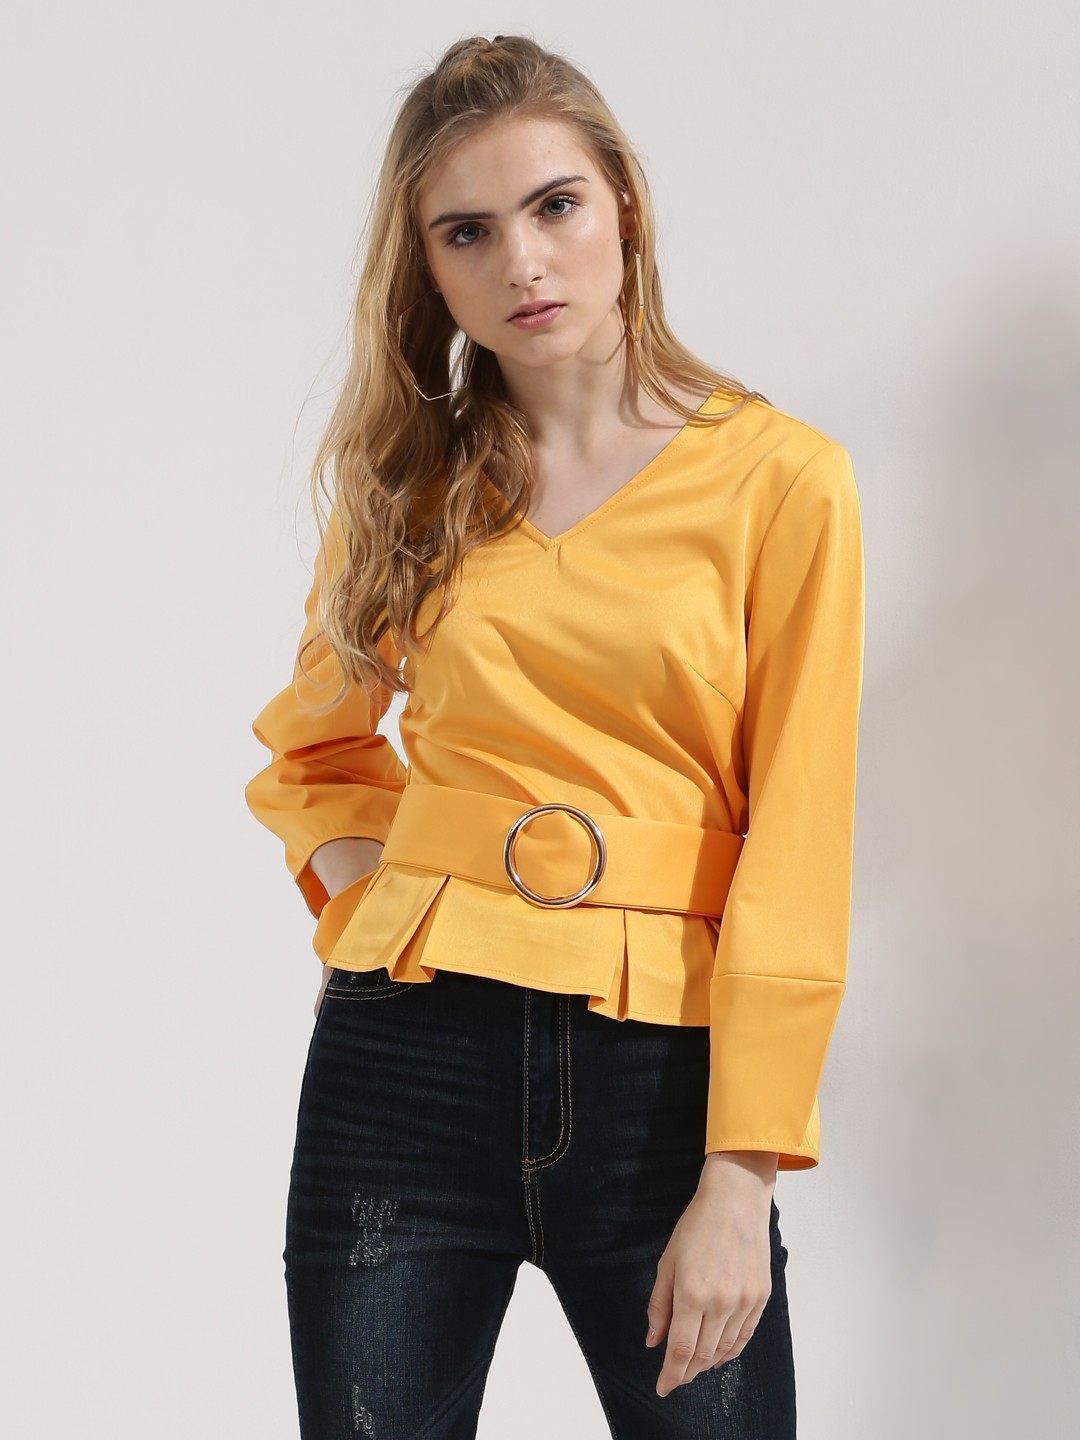 Origami Lily Orange Top With Metal Ring Belt 1